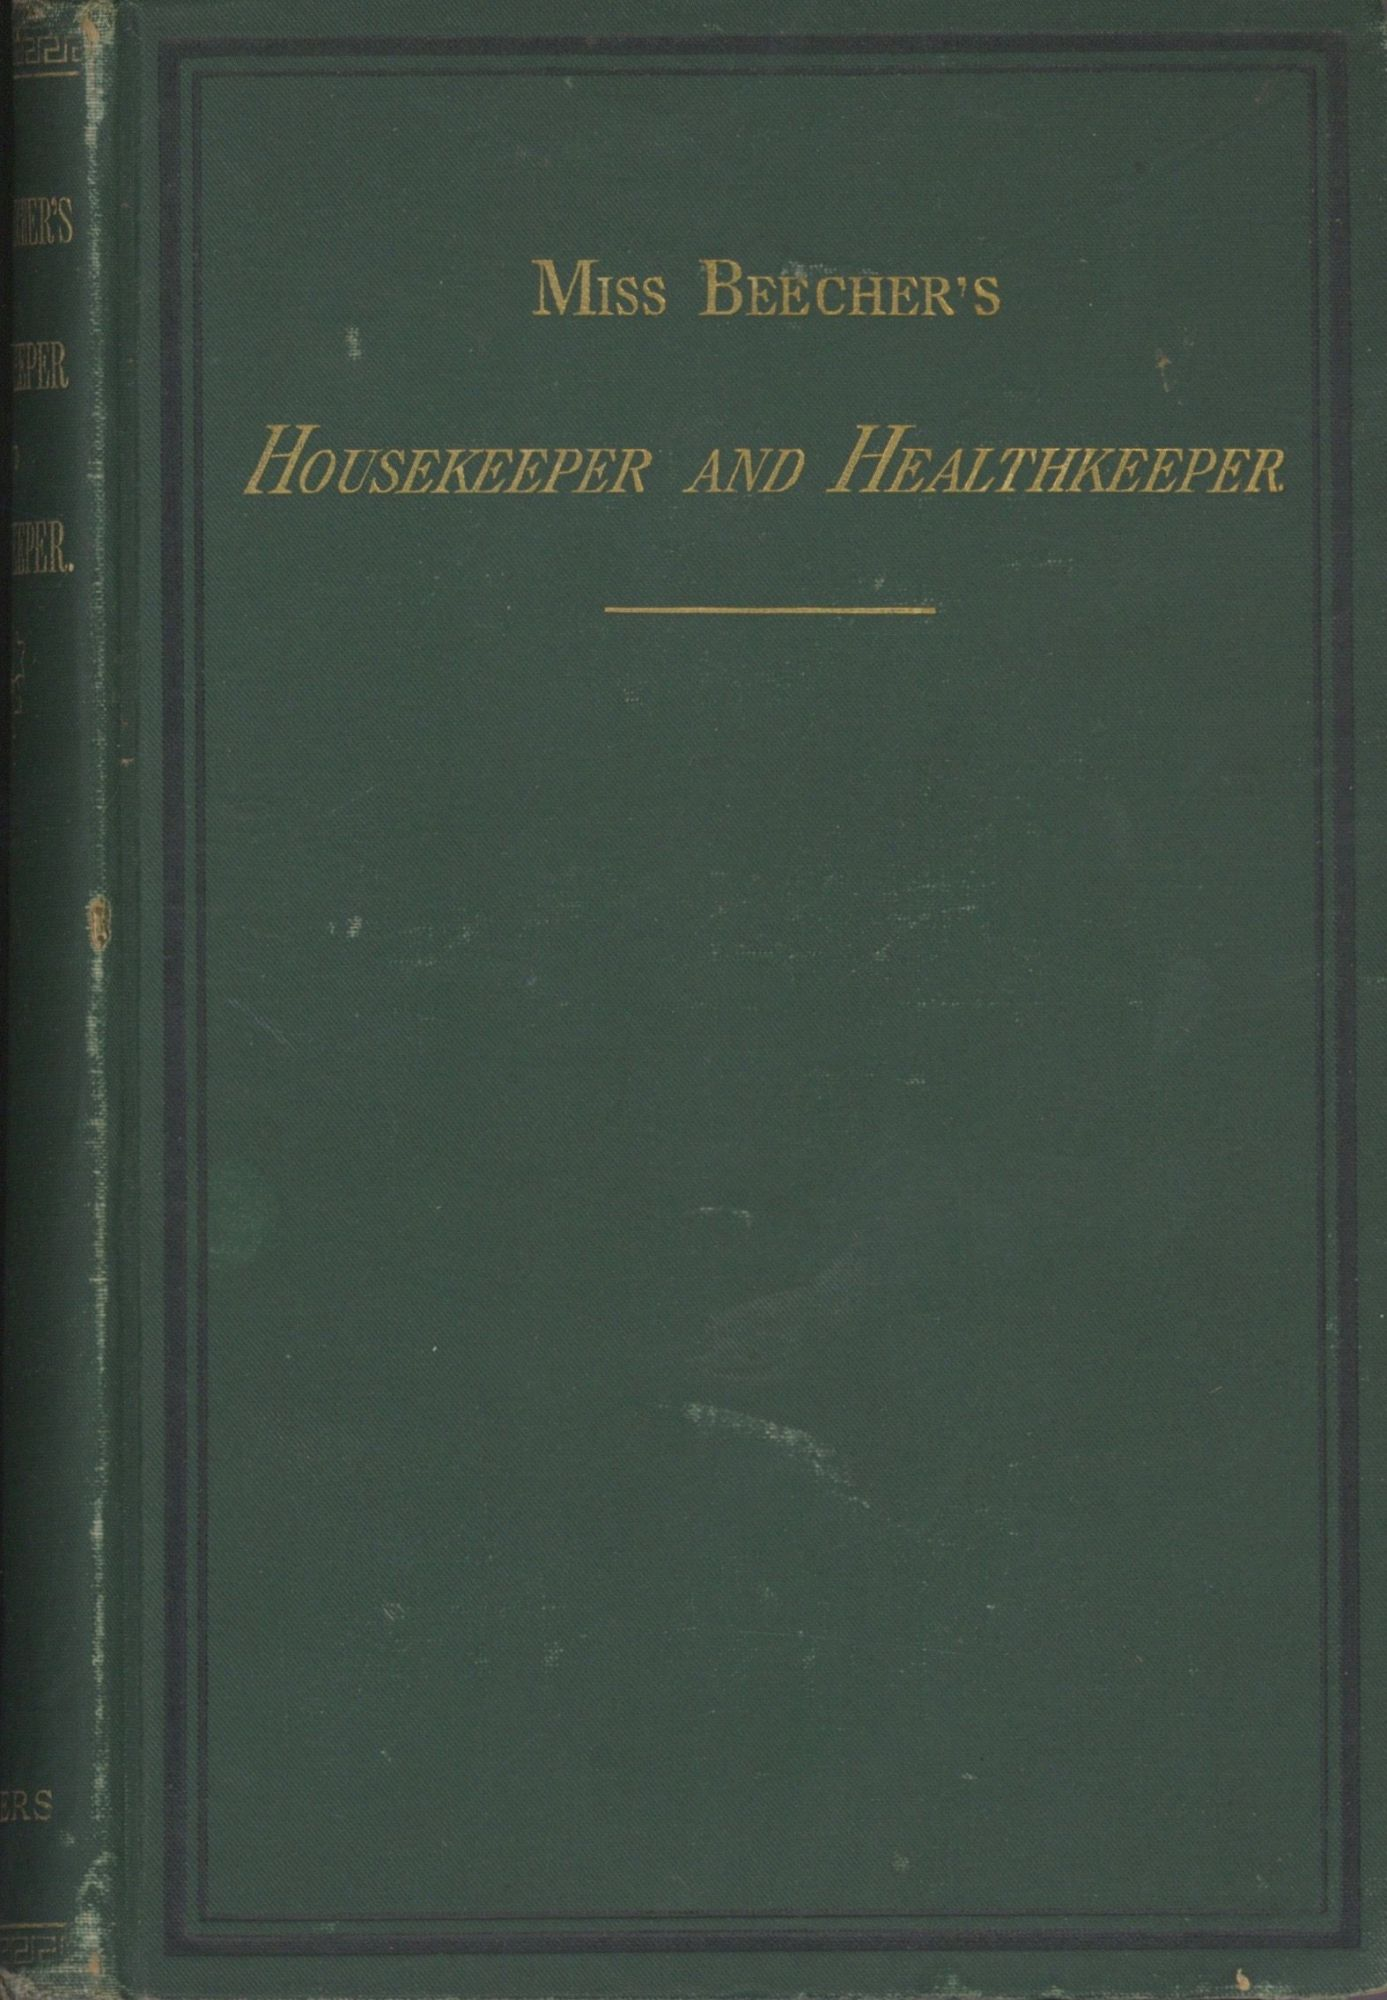 Miss Beecher's Housekeeper and Healthkeeper: Containing Five Hundred Recipes for Economical and Healthful Cooking; Also, Many Directions for Securing Health and Happiness. Beecher, Catherine E.